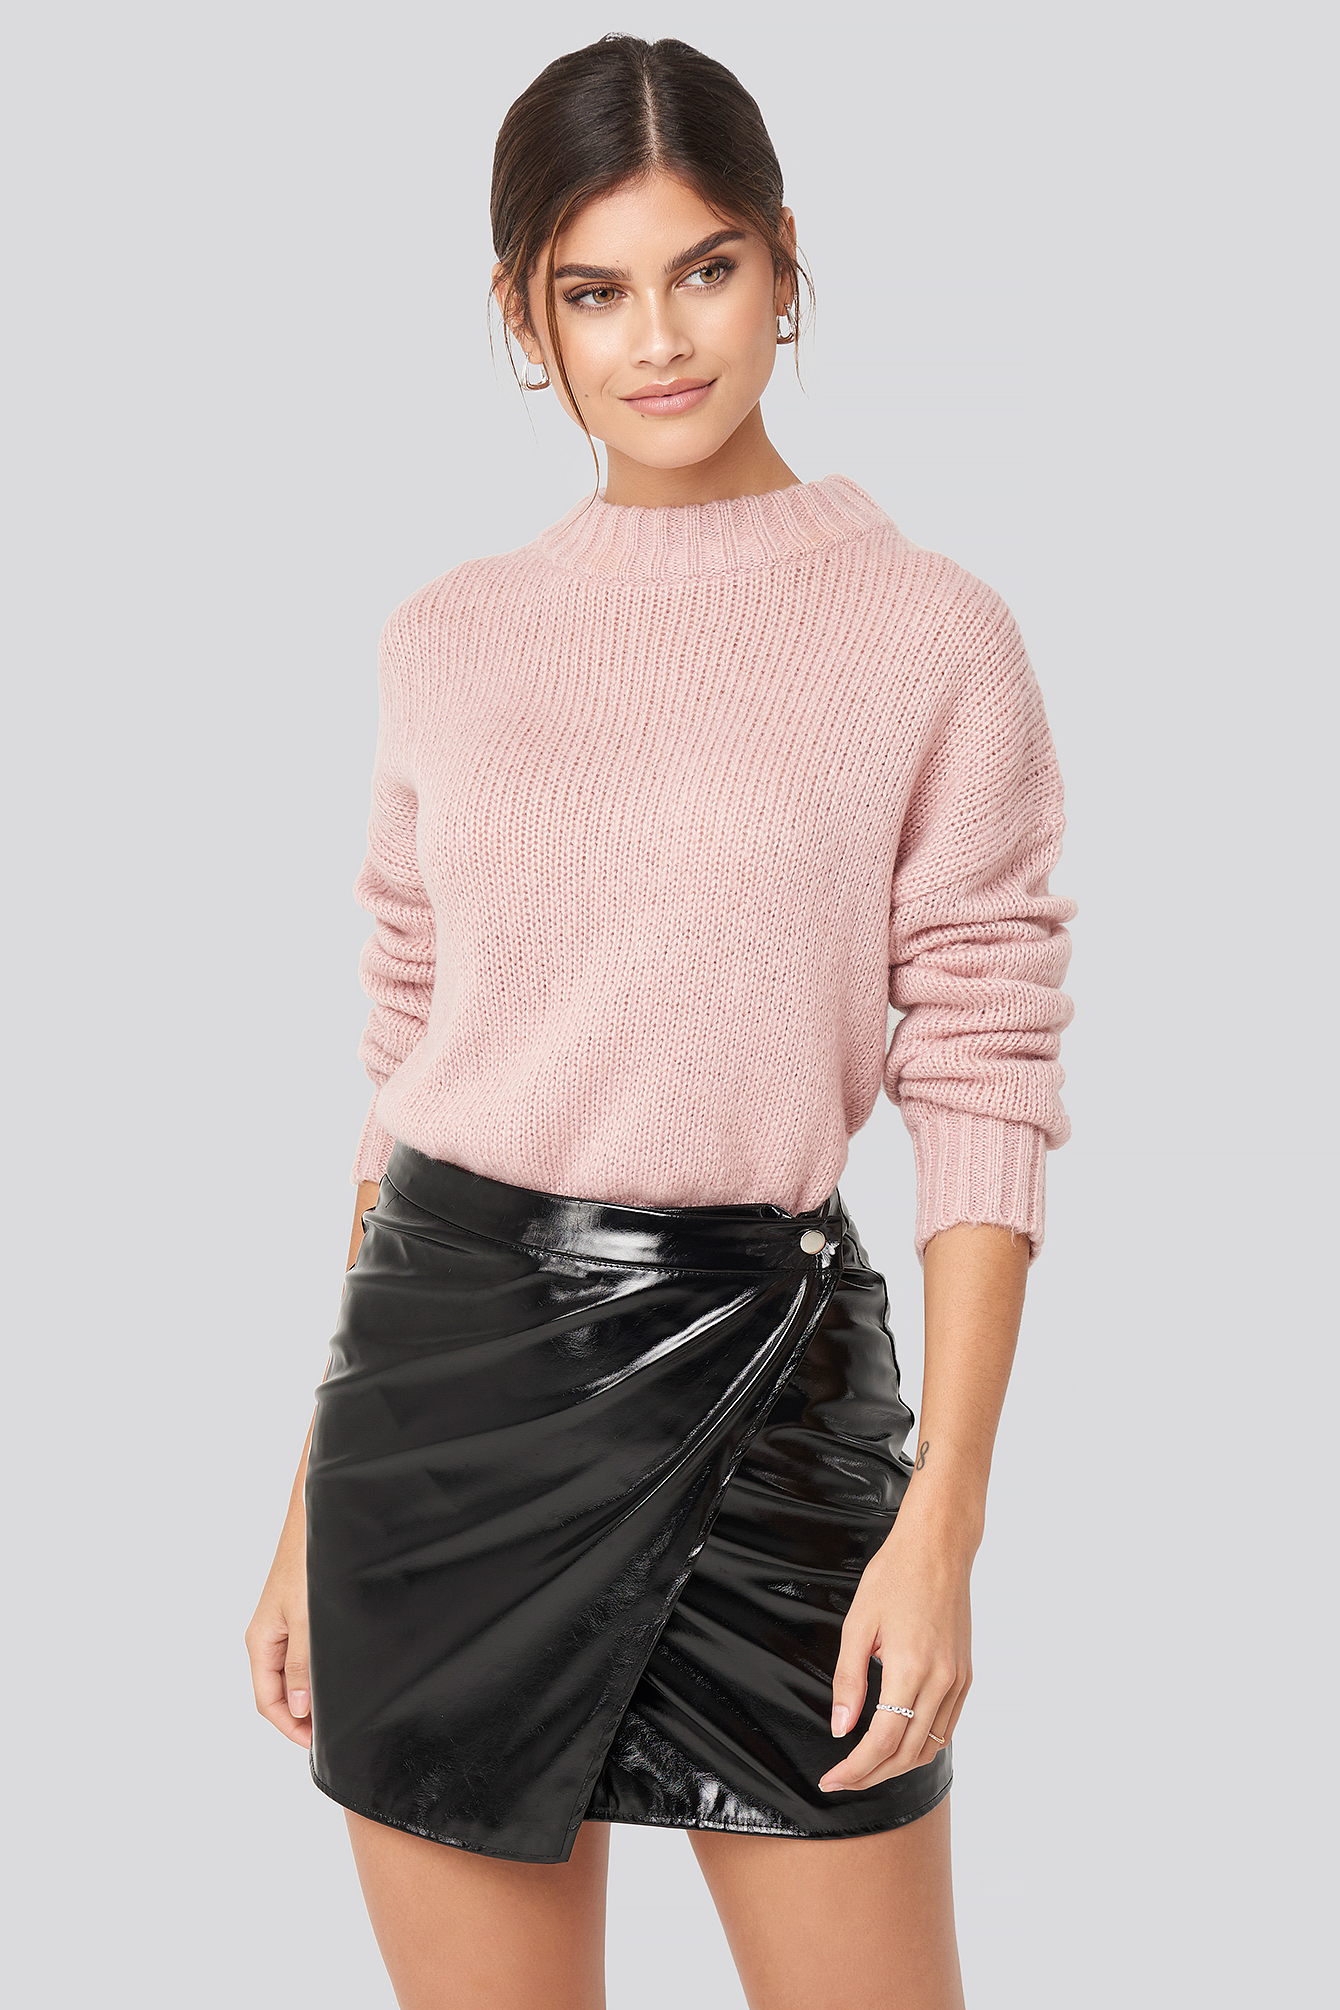 Black Patent Overlap  Mini Skirt